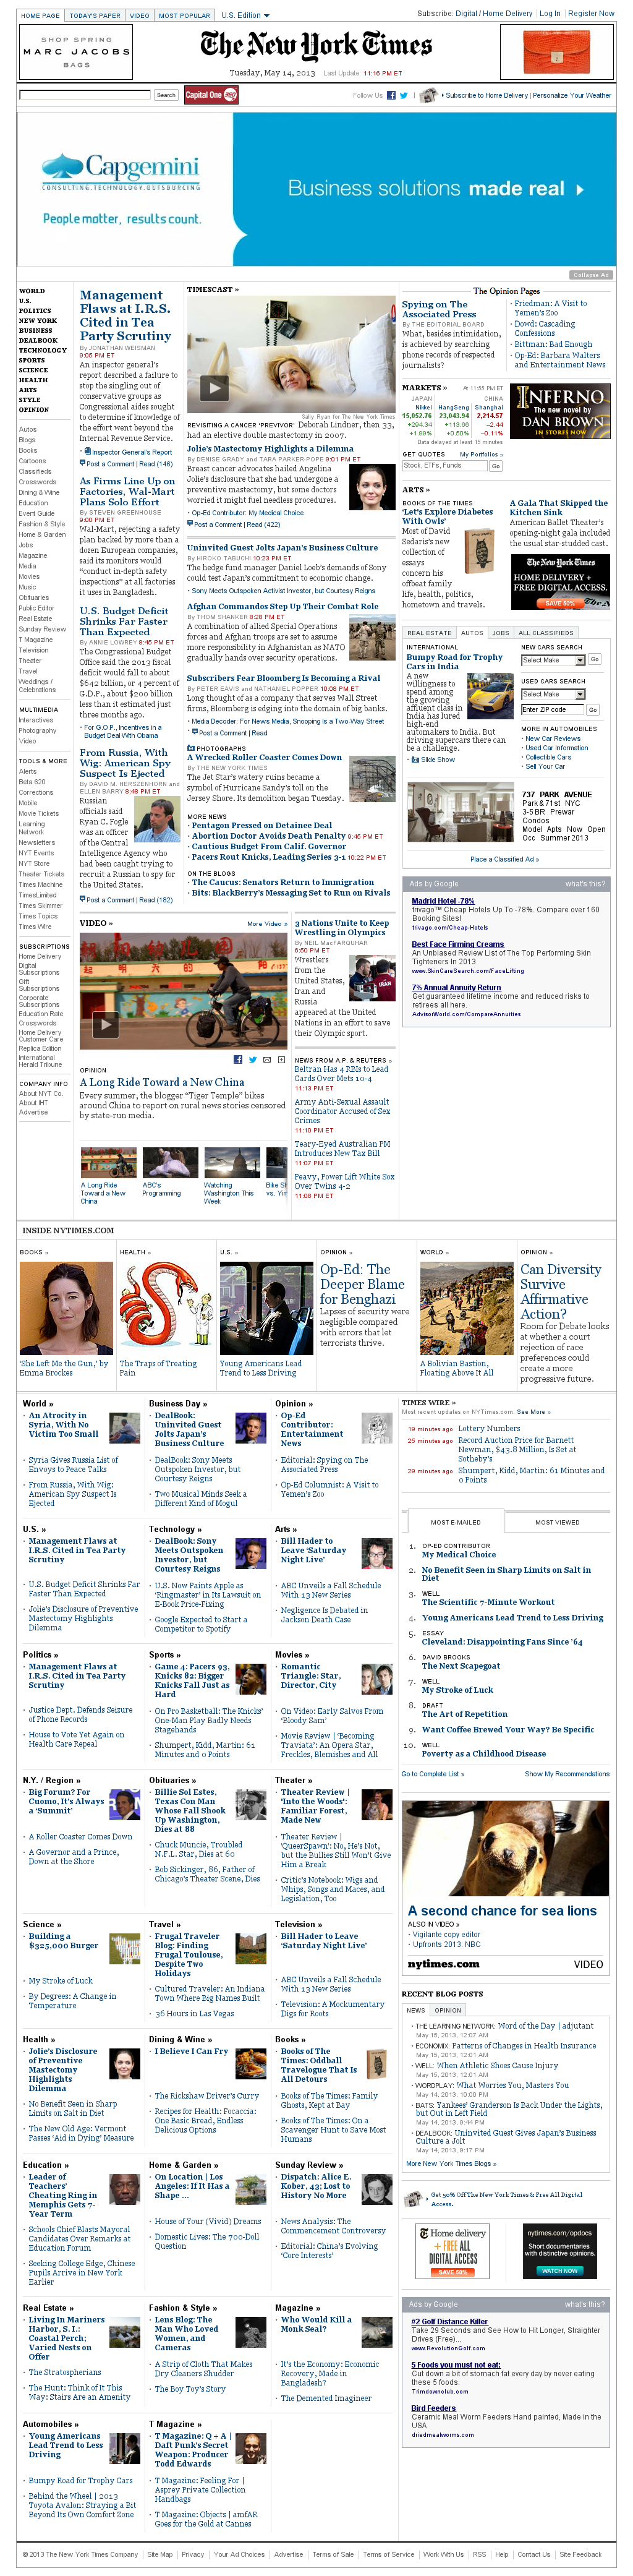 The New York Times at Wednesday May 15, 2013, 4:17 a.m. UTC